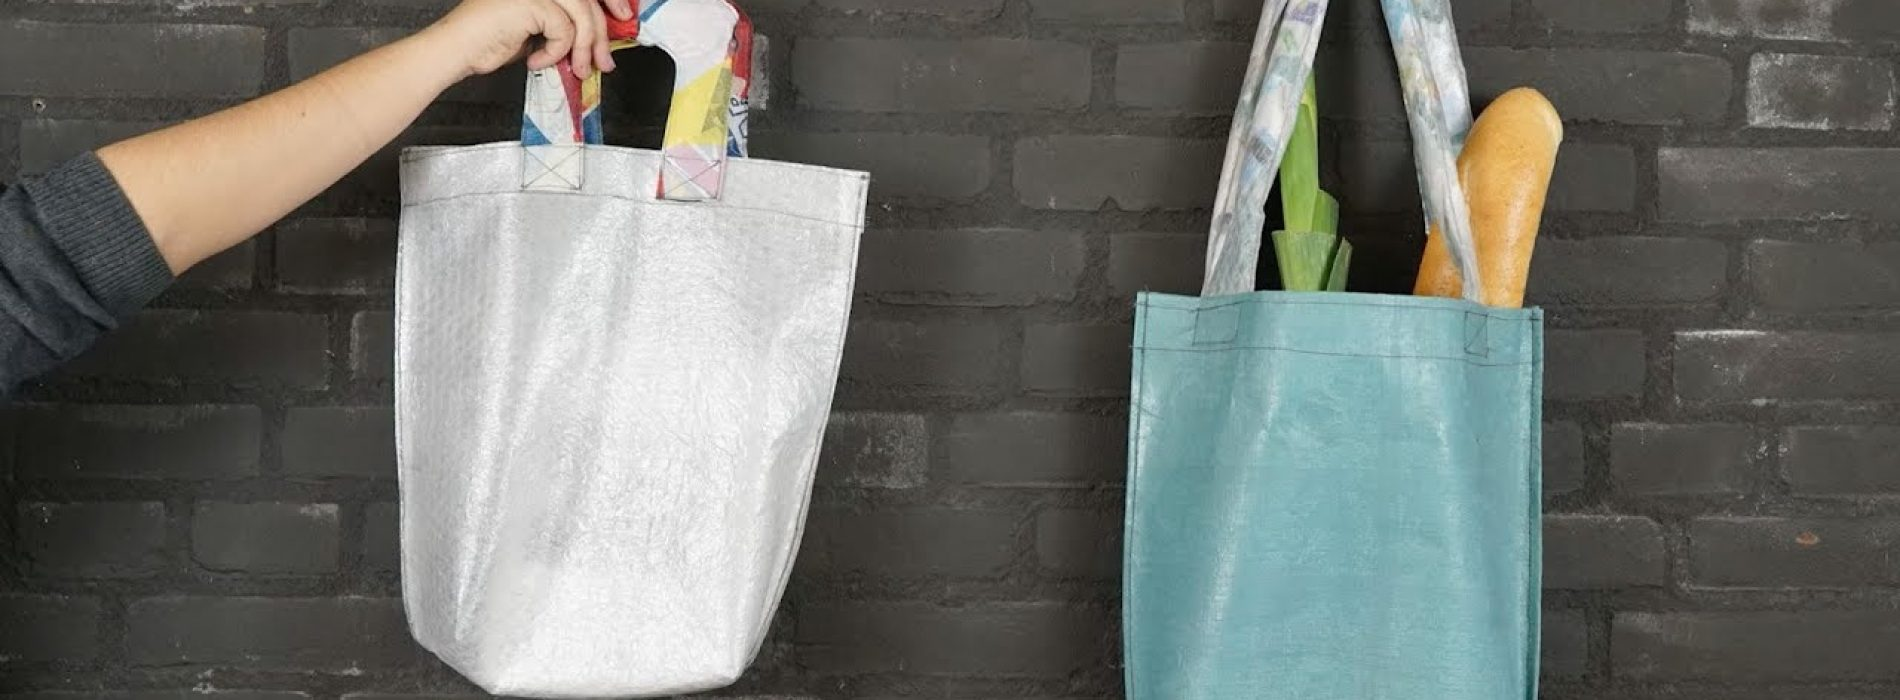 What are the Best Ways to Use Plastic Bags?